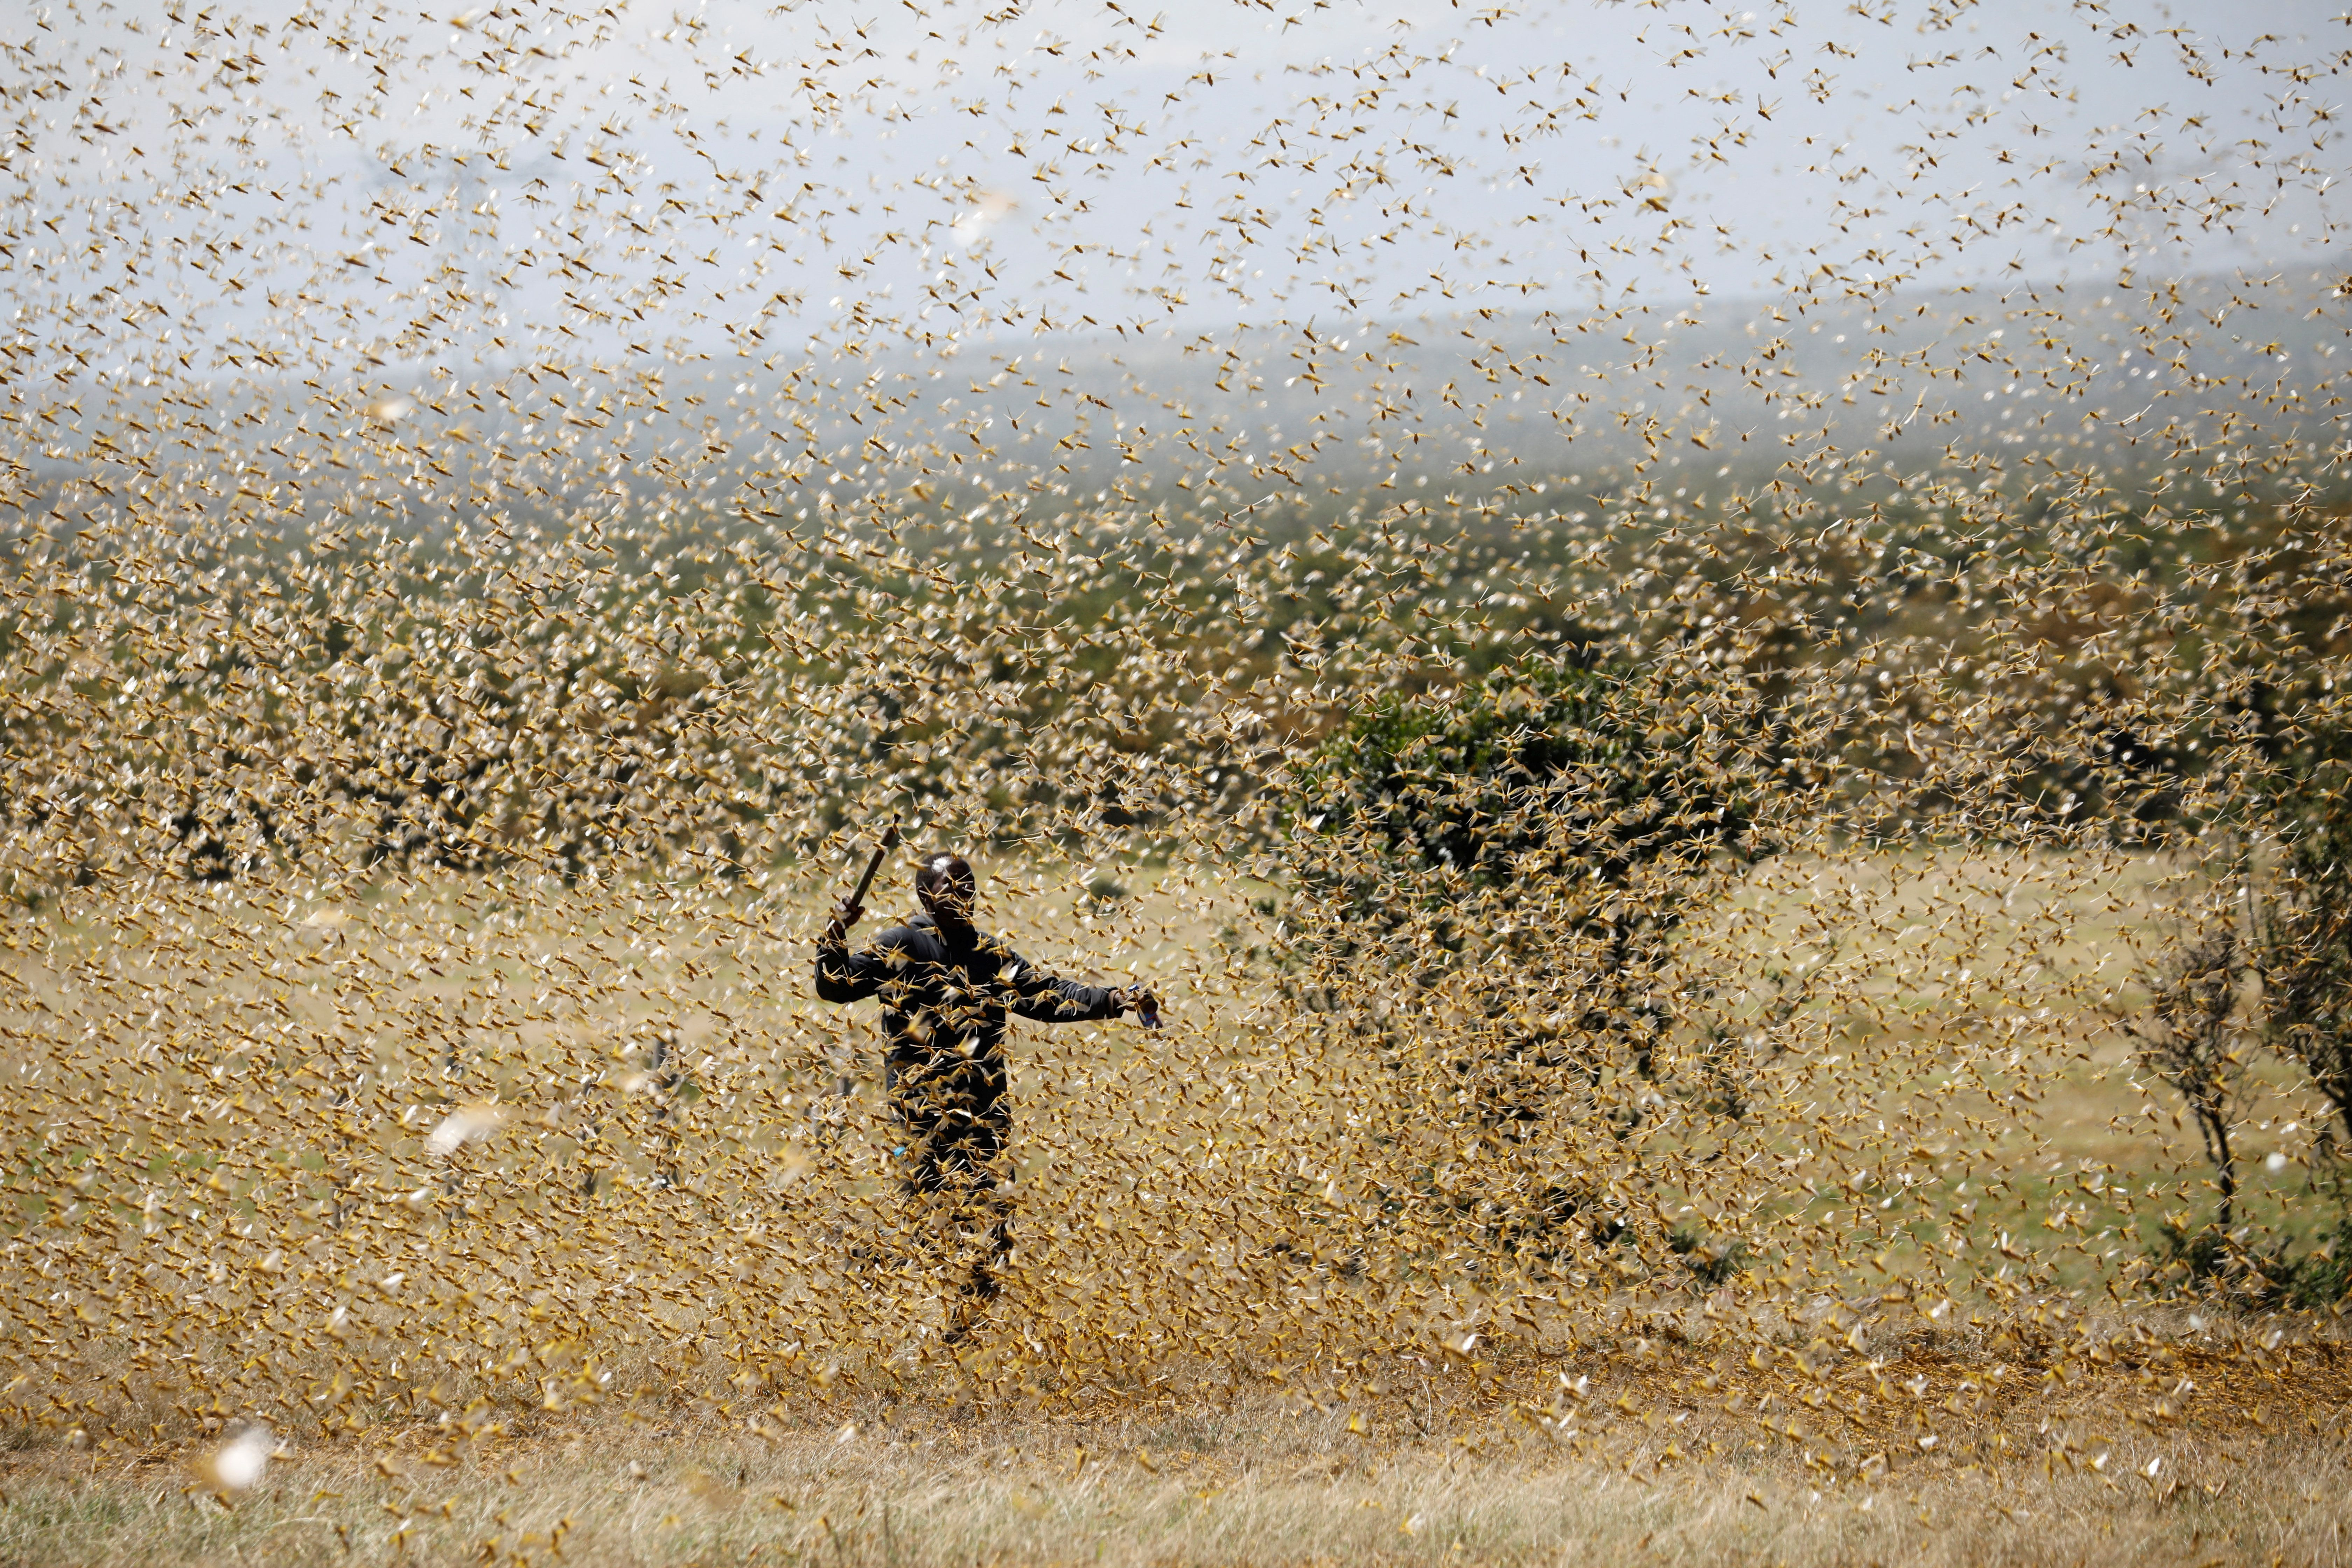 A man attempts to fend-off a swarm of desert locusts at a ranch near the town on Nanyuki in Laikipia county, Kenya.